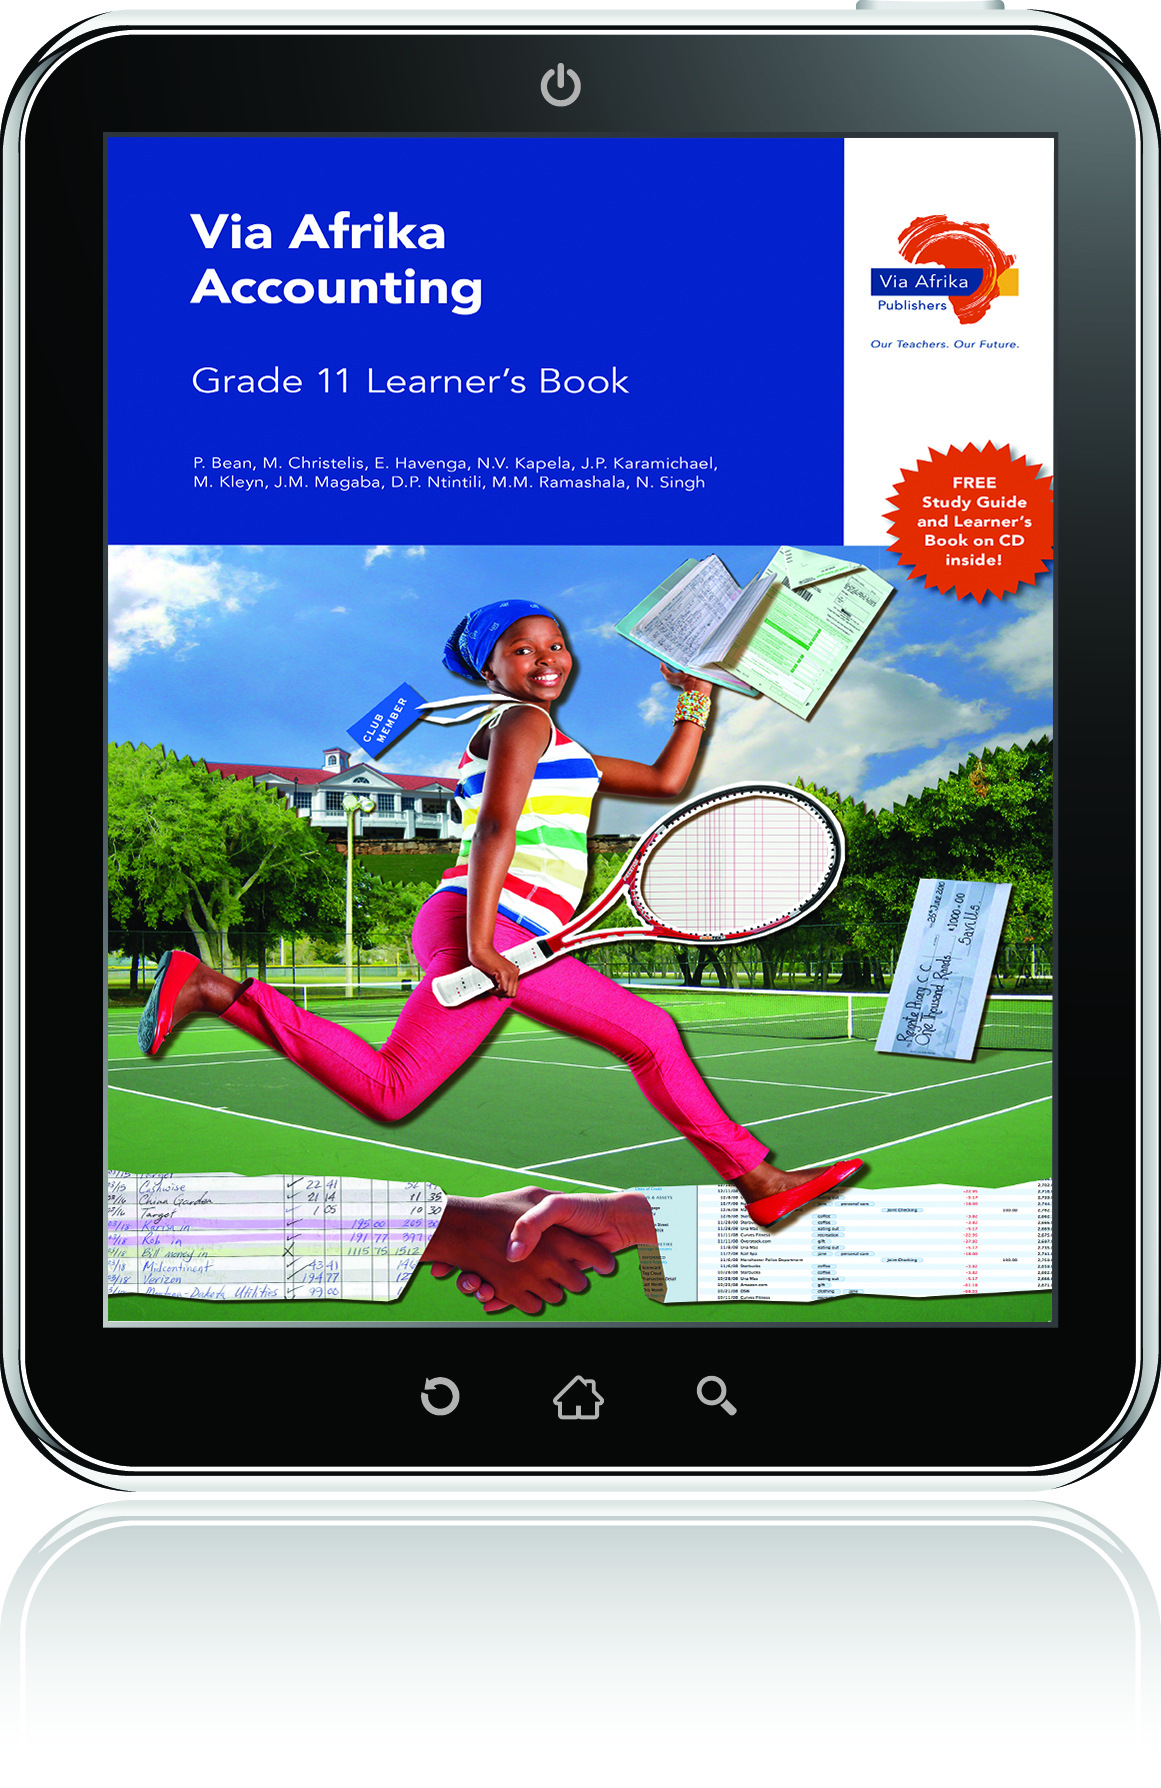 eBook ePub for Tablets: Via Afrika Accounting Grade 11 Learner's Book